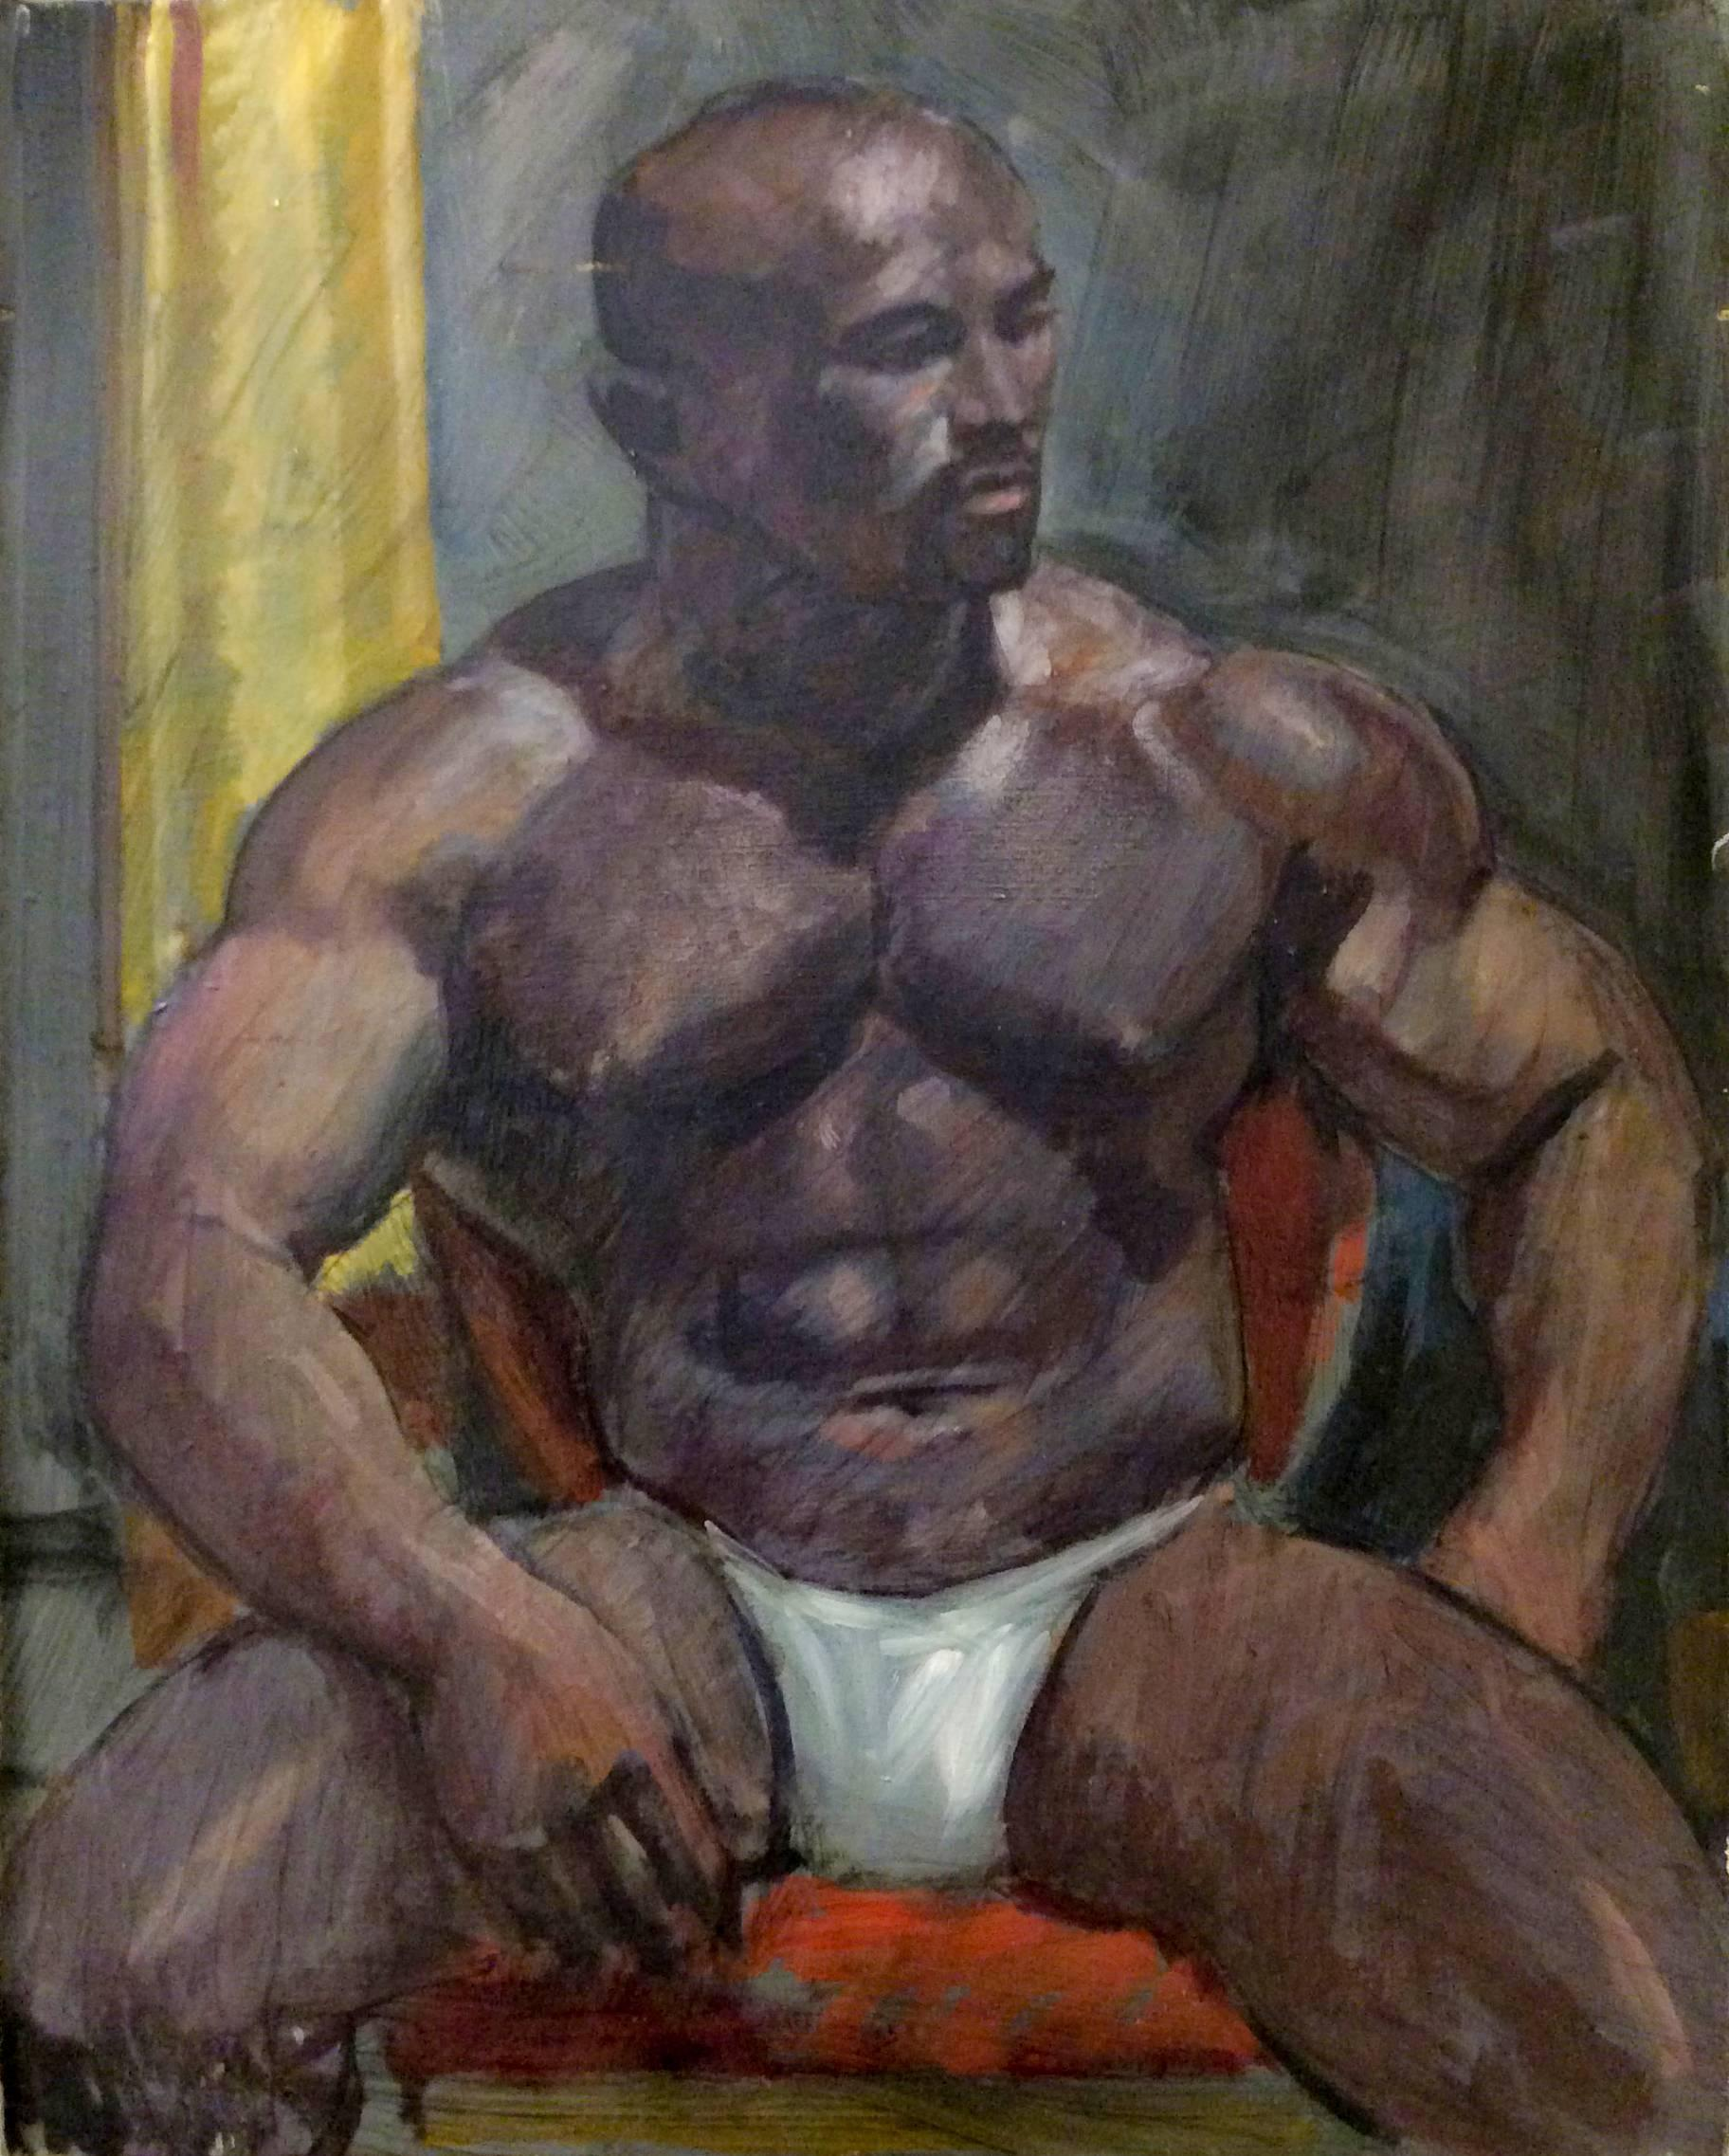 Untitled Portrait I (Academic Style Portrait Painting of a Young Muscular Man)